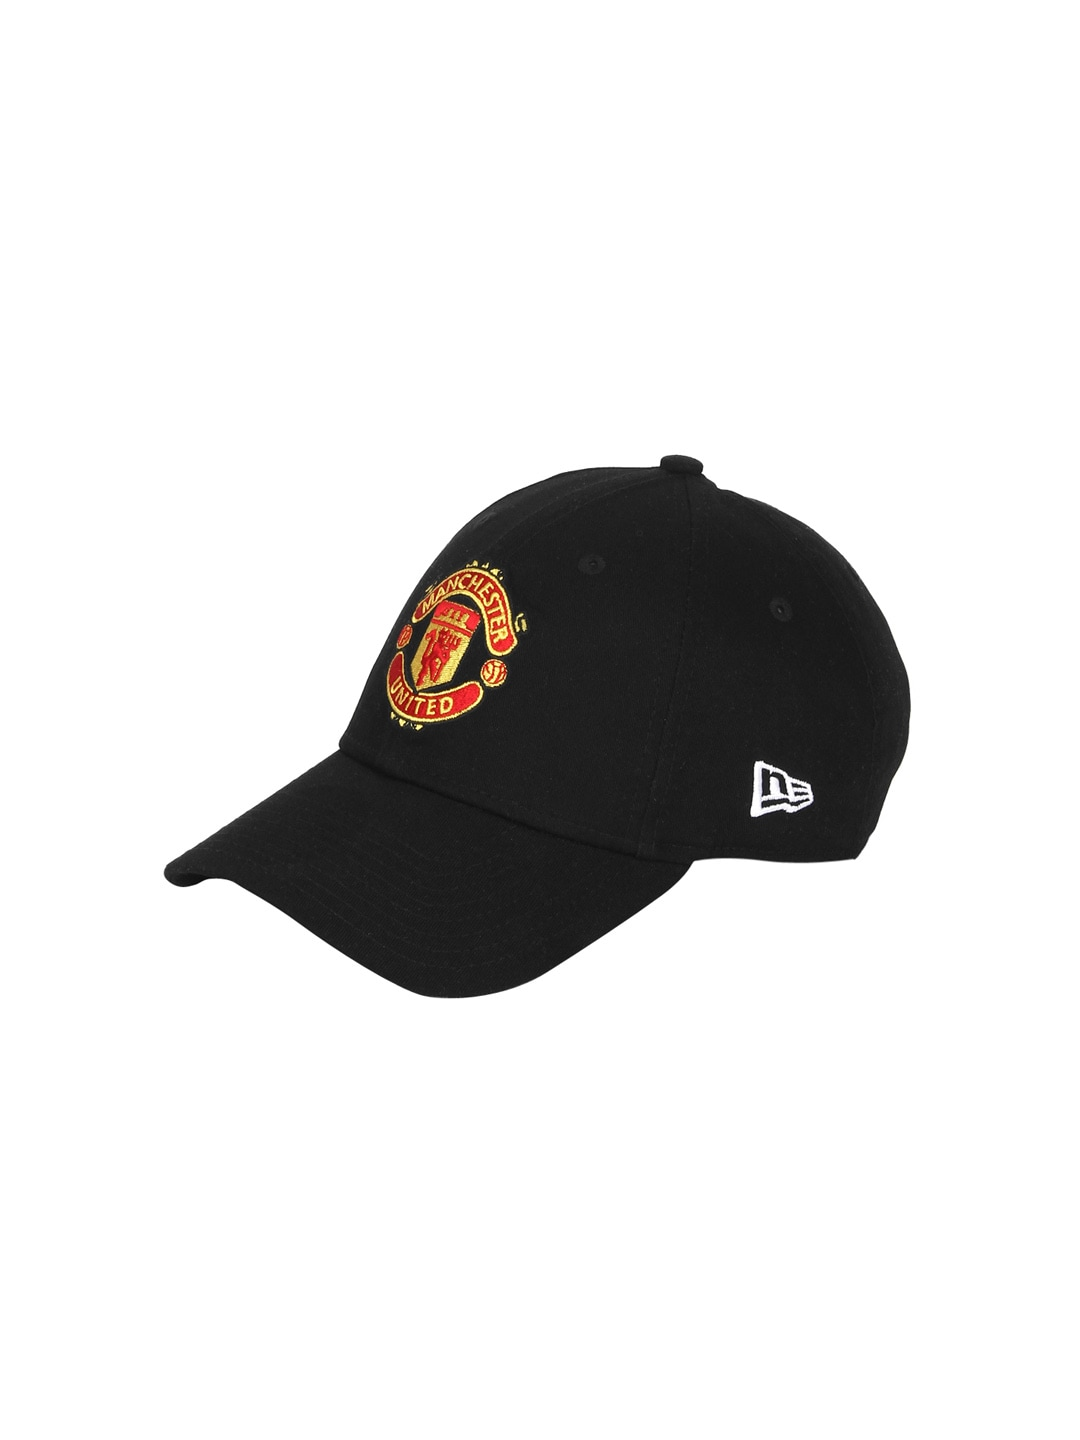 7eed23d514d Manchester United Caps - Buy Manchester United Caps Online in India